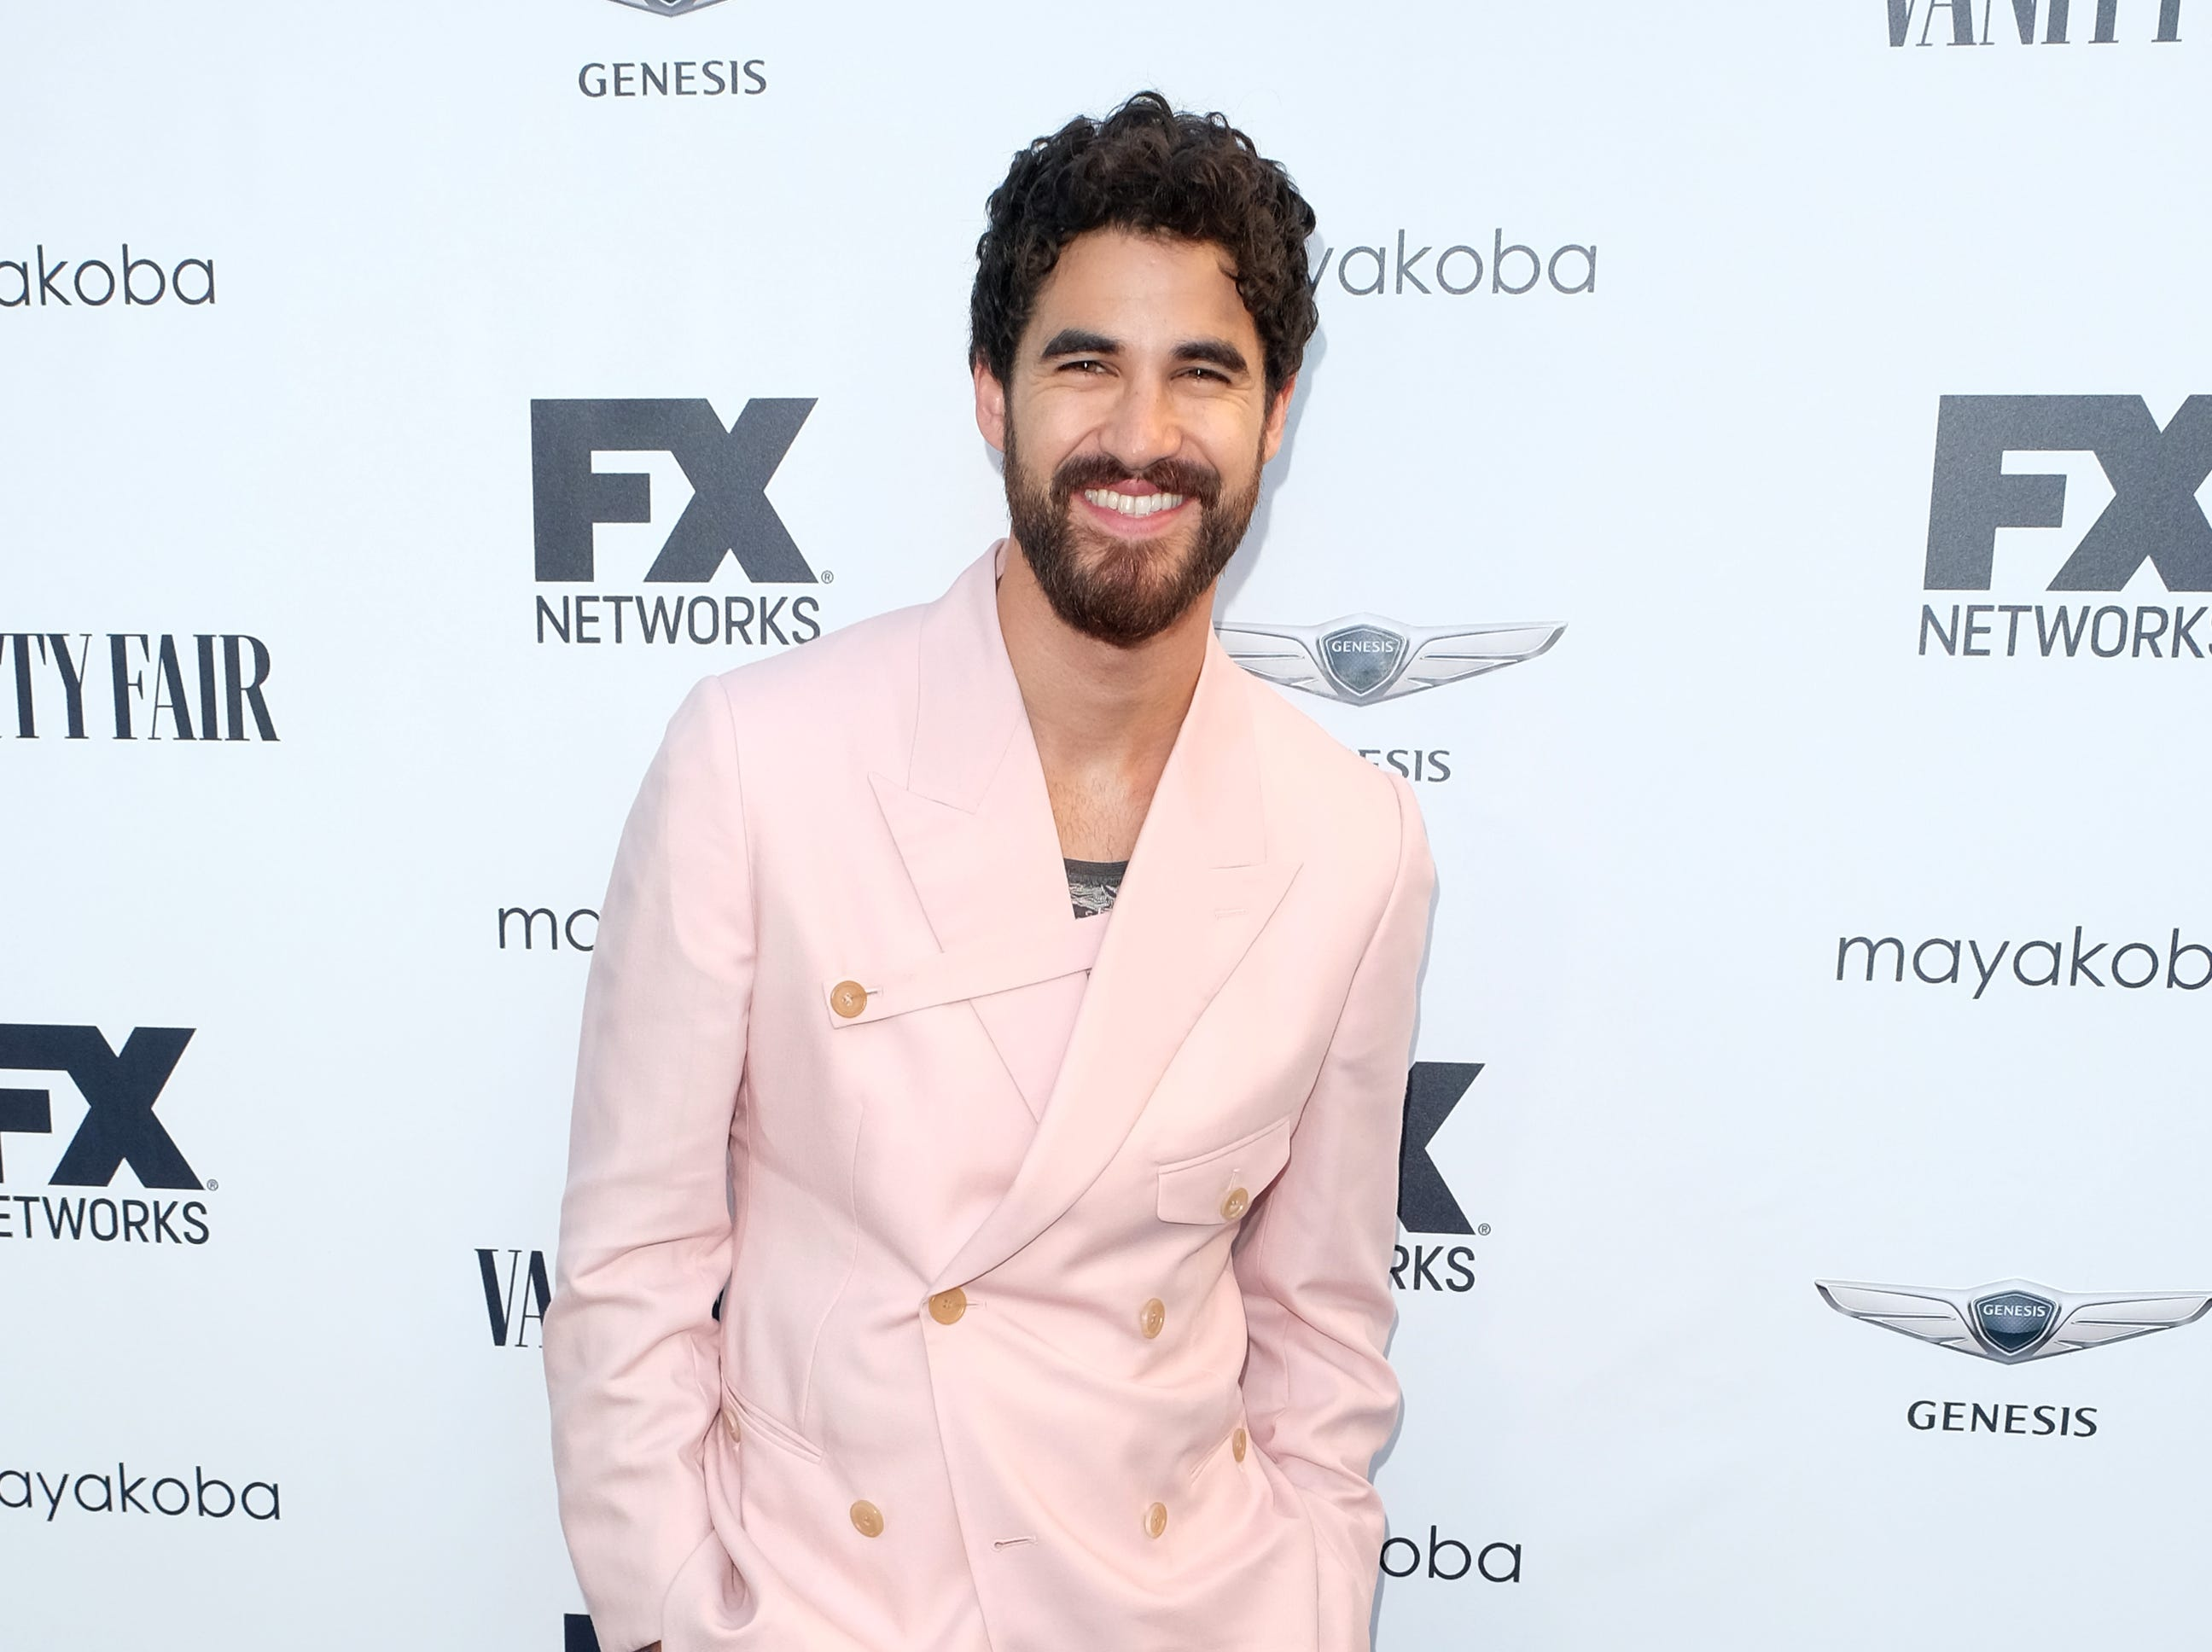 LOS ANGELES, CA - SEPTEMBER 16:  Darren Criss attends the FX And Vanity Fair Emmy Celebration at CRAFT LA on September 16, 2018 in Los Angeles, California.  (Photo by Matthew Simmons/FilmMagic) ORG XMIT: 775226232 ORIG FILE ID: 1034615910